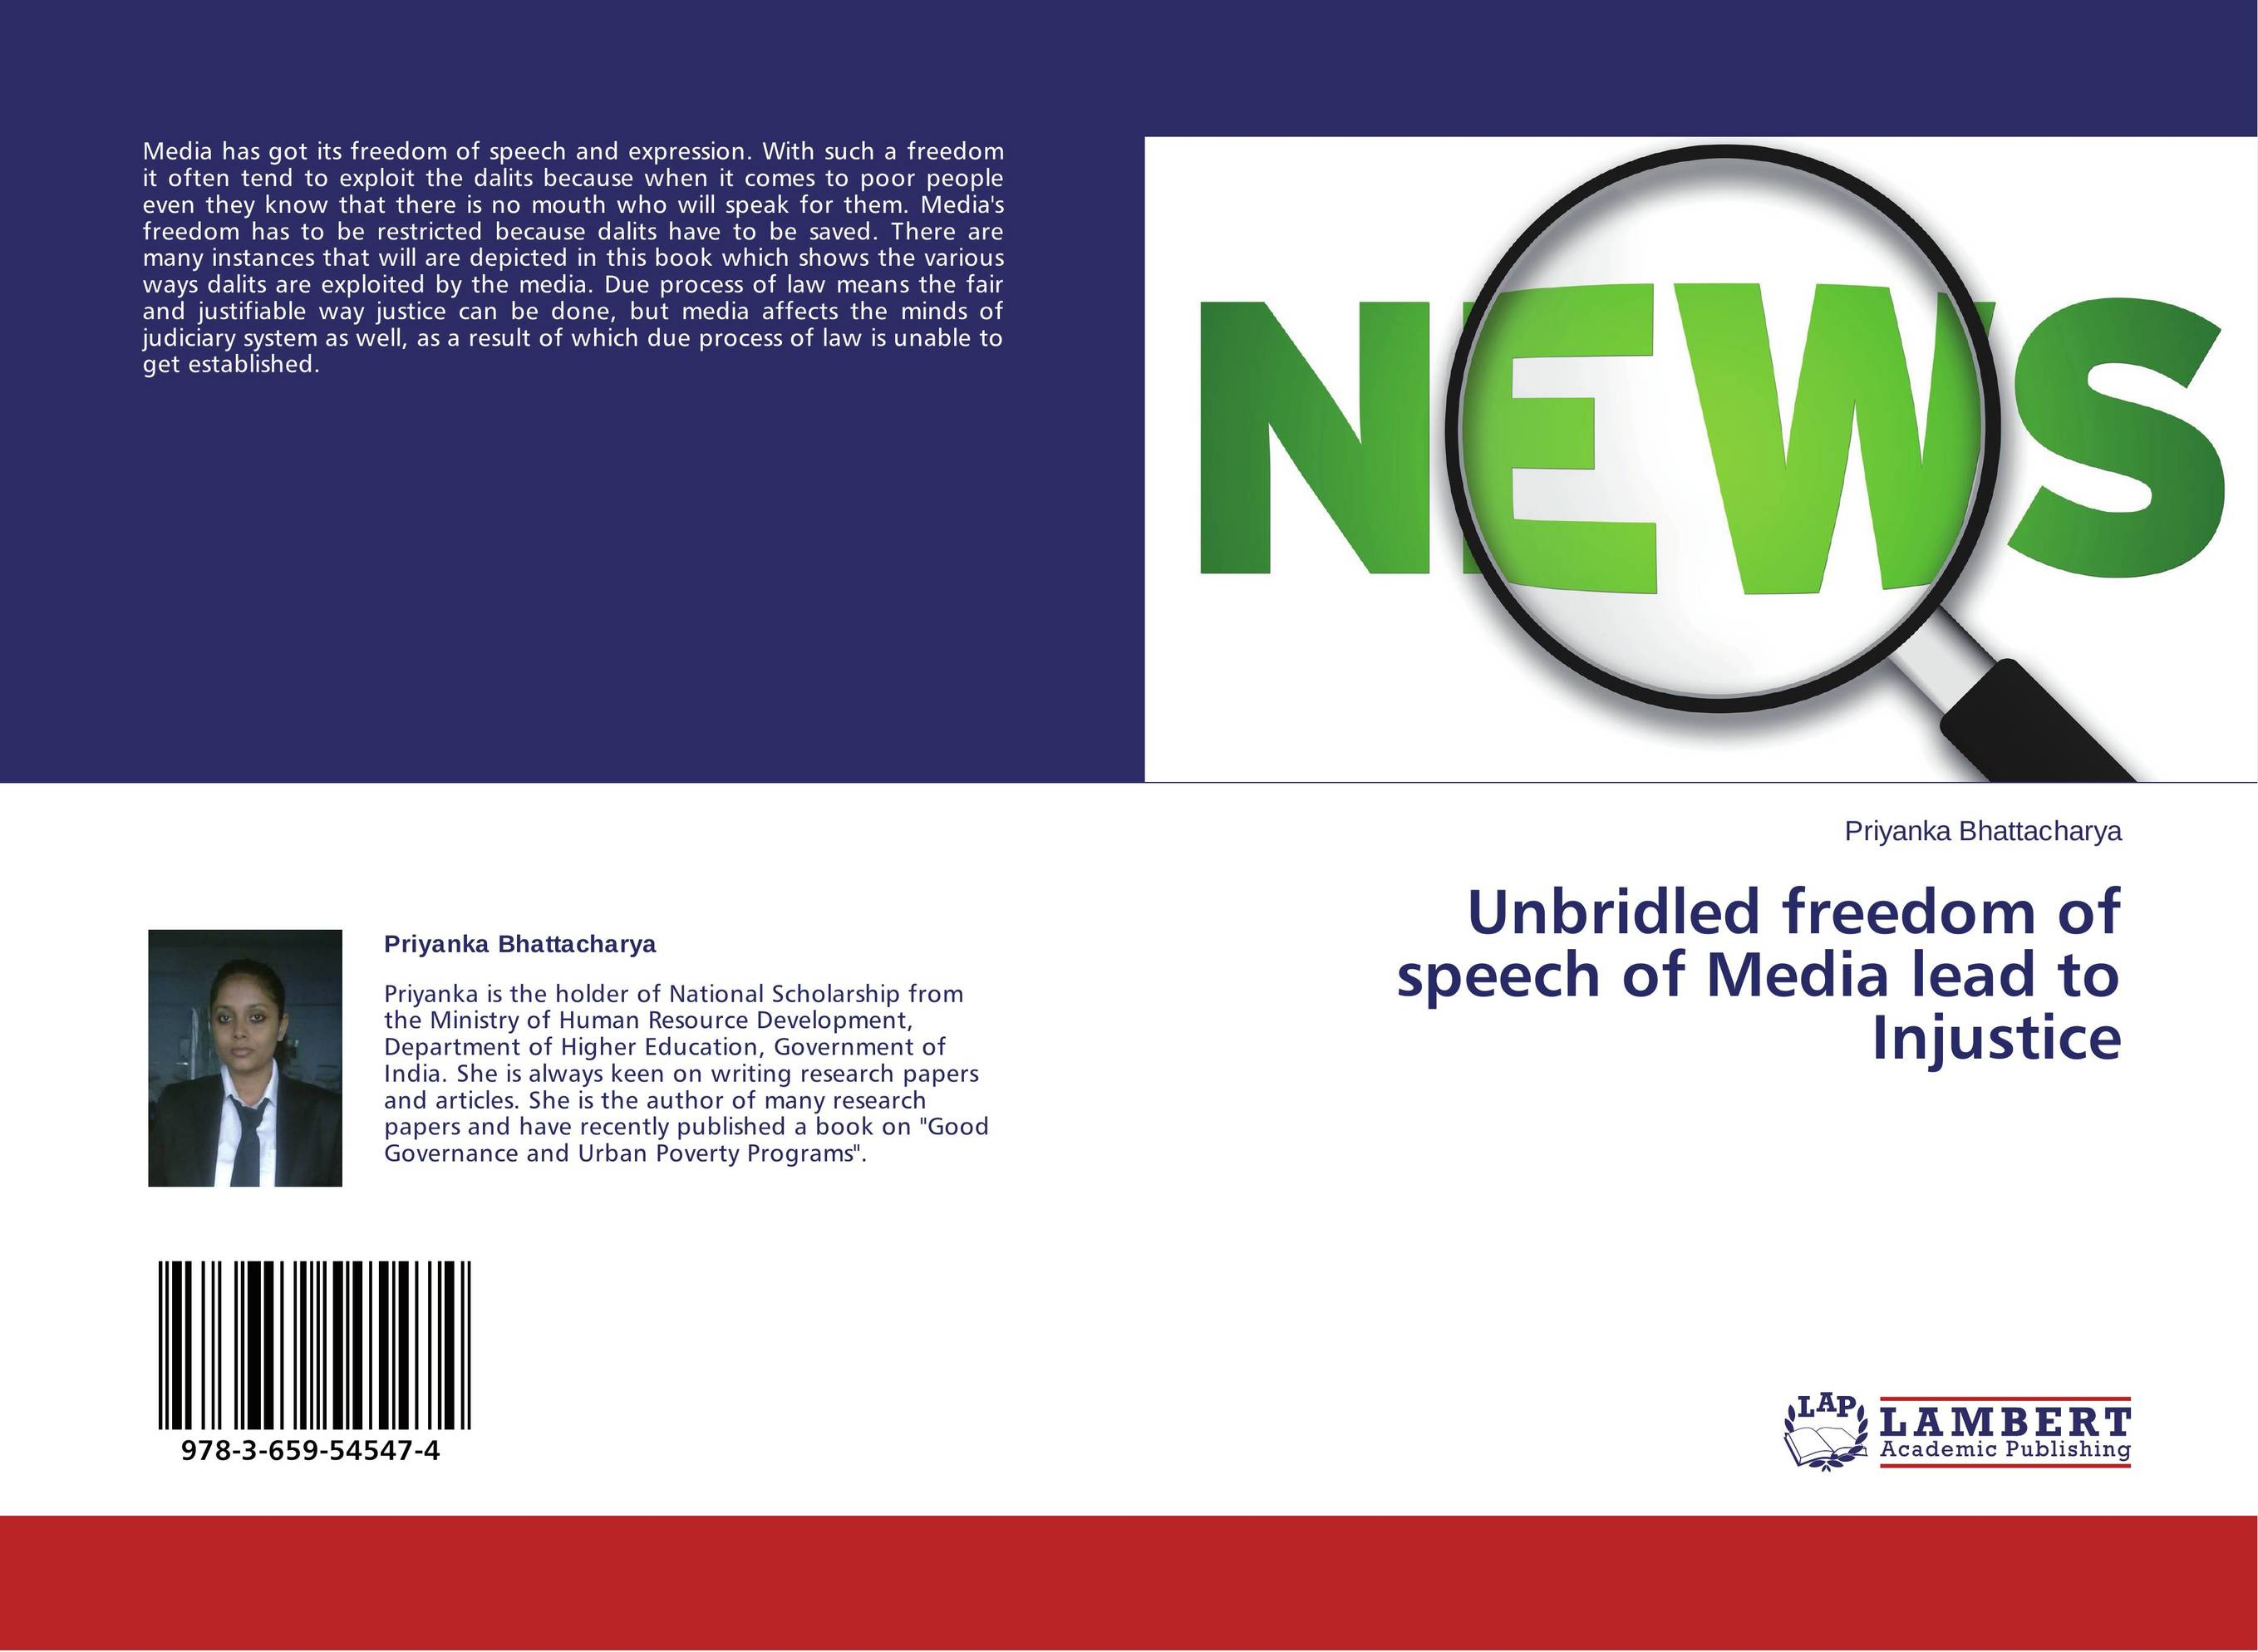 restriction of free speech Hb 270 (formerly hb 189aa) raises serious constitutional concerns about restricting first amendment protected speech and has the potential to groundlessly void election outcomes, invalidating the will of the voters.